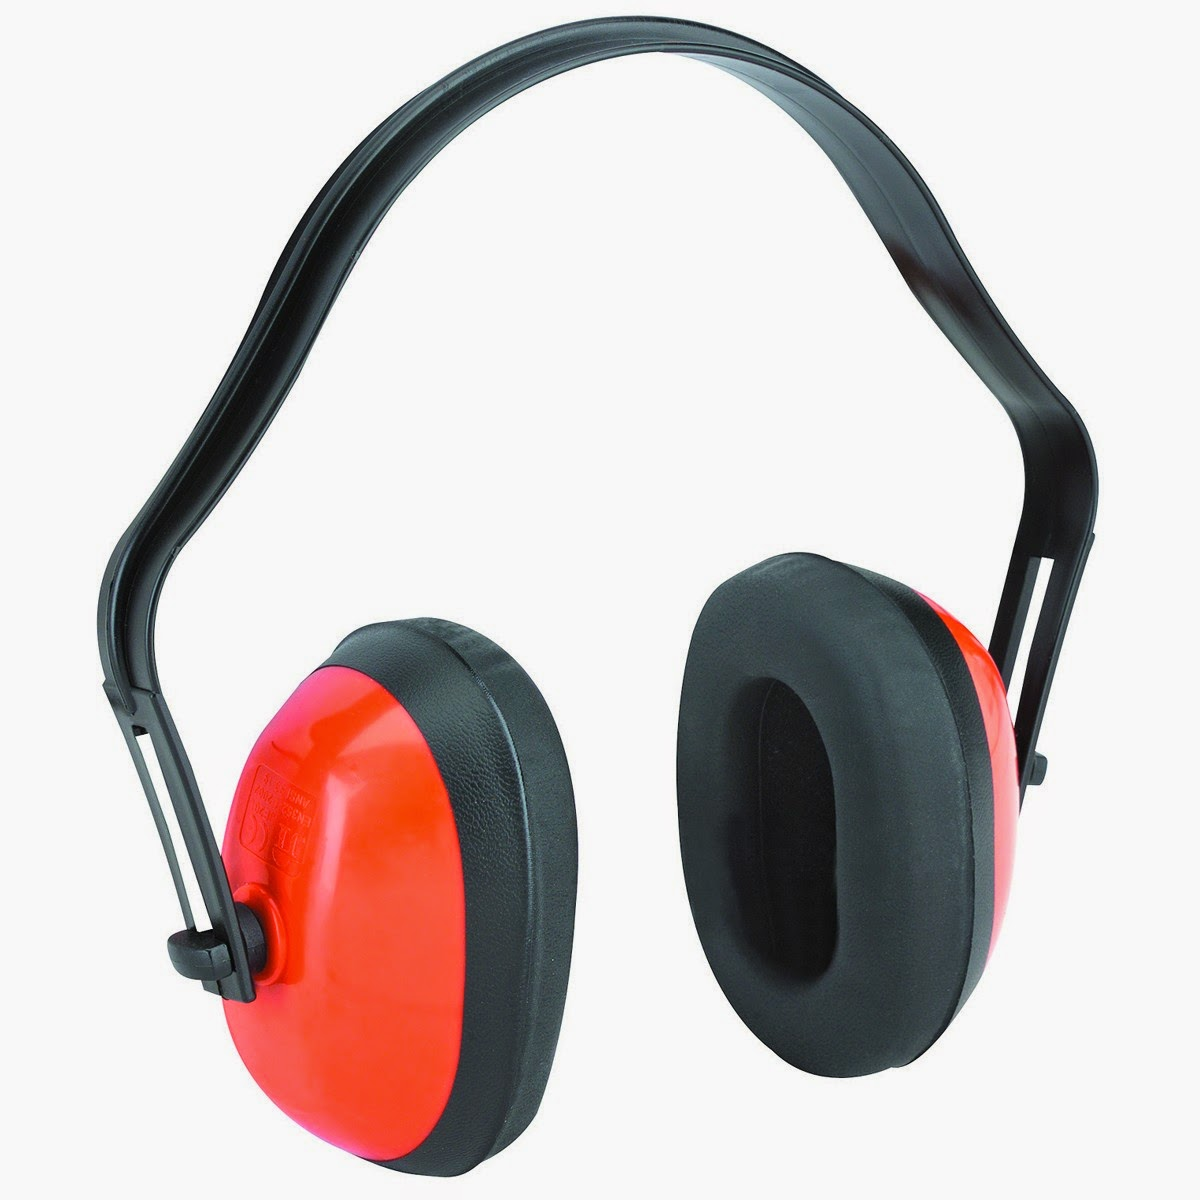 http://www.harborfreight.com/industrial-ear-muffs-61372.html